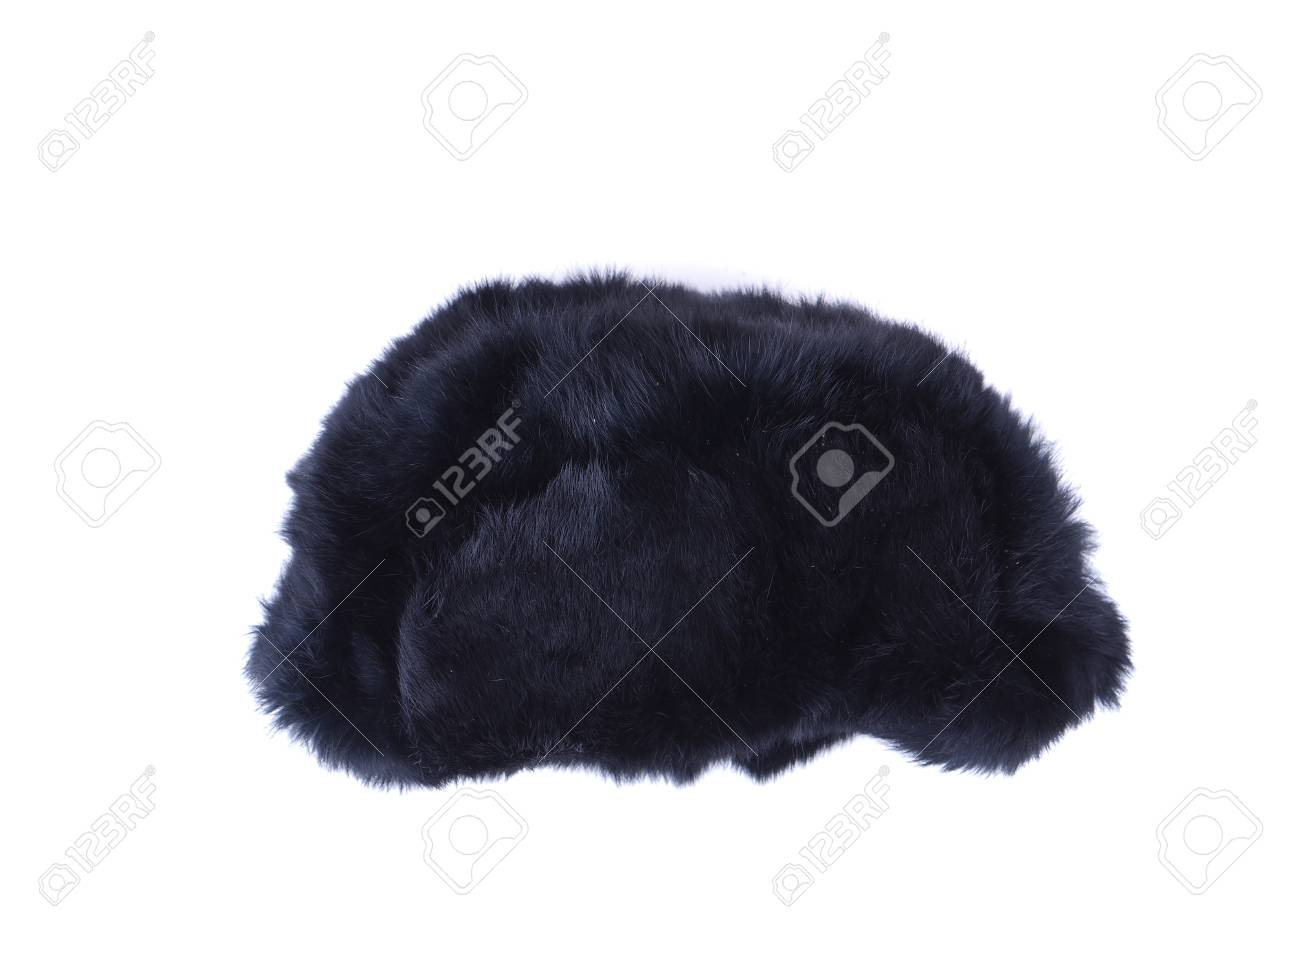 c01bf6a47d1 fur hat ear flaps on the white background Stock Photo - 60700167